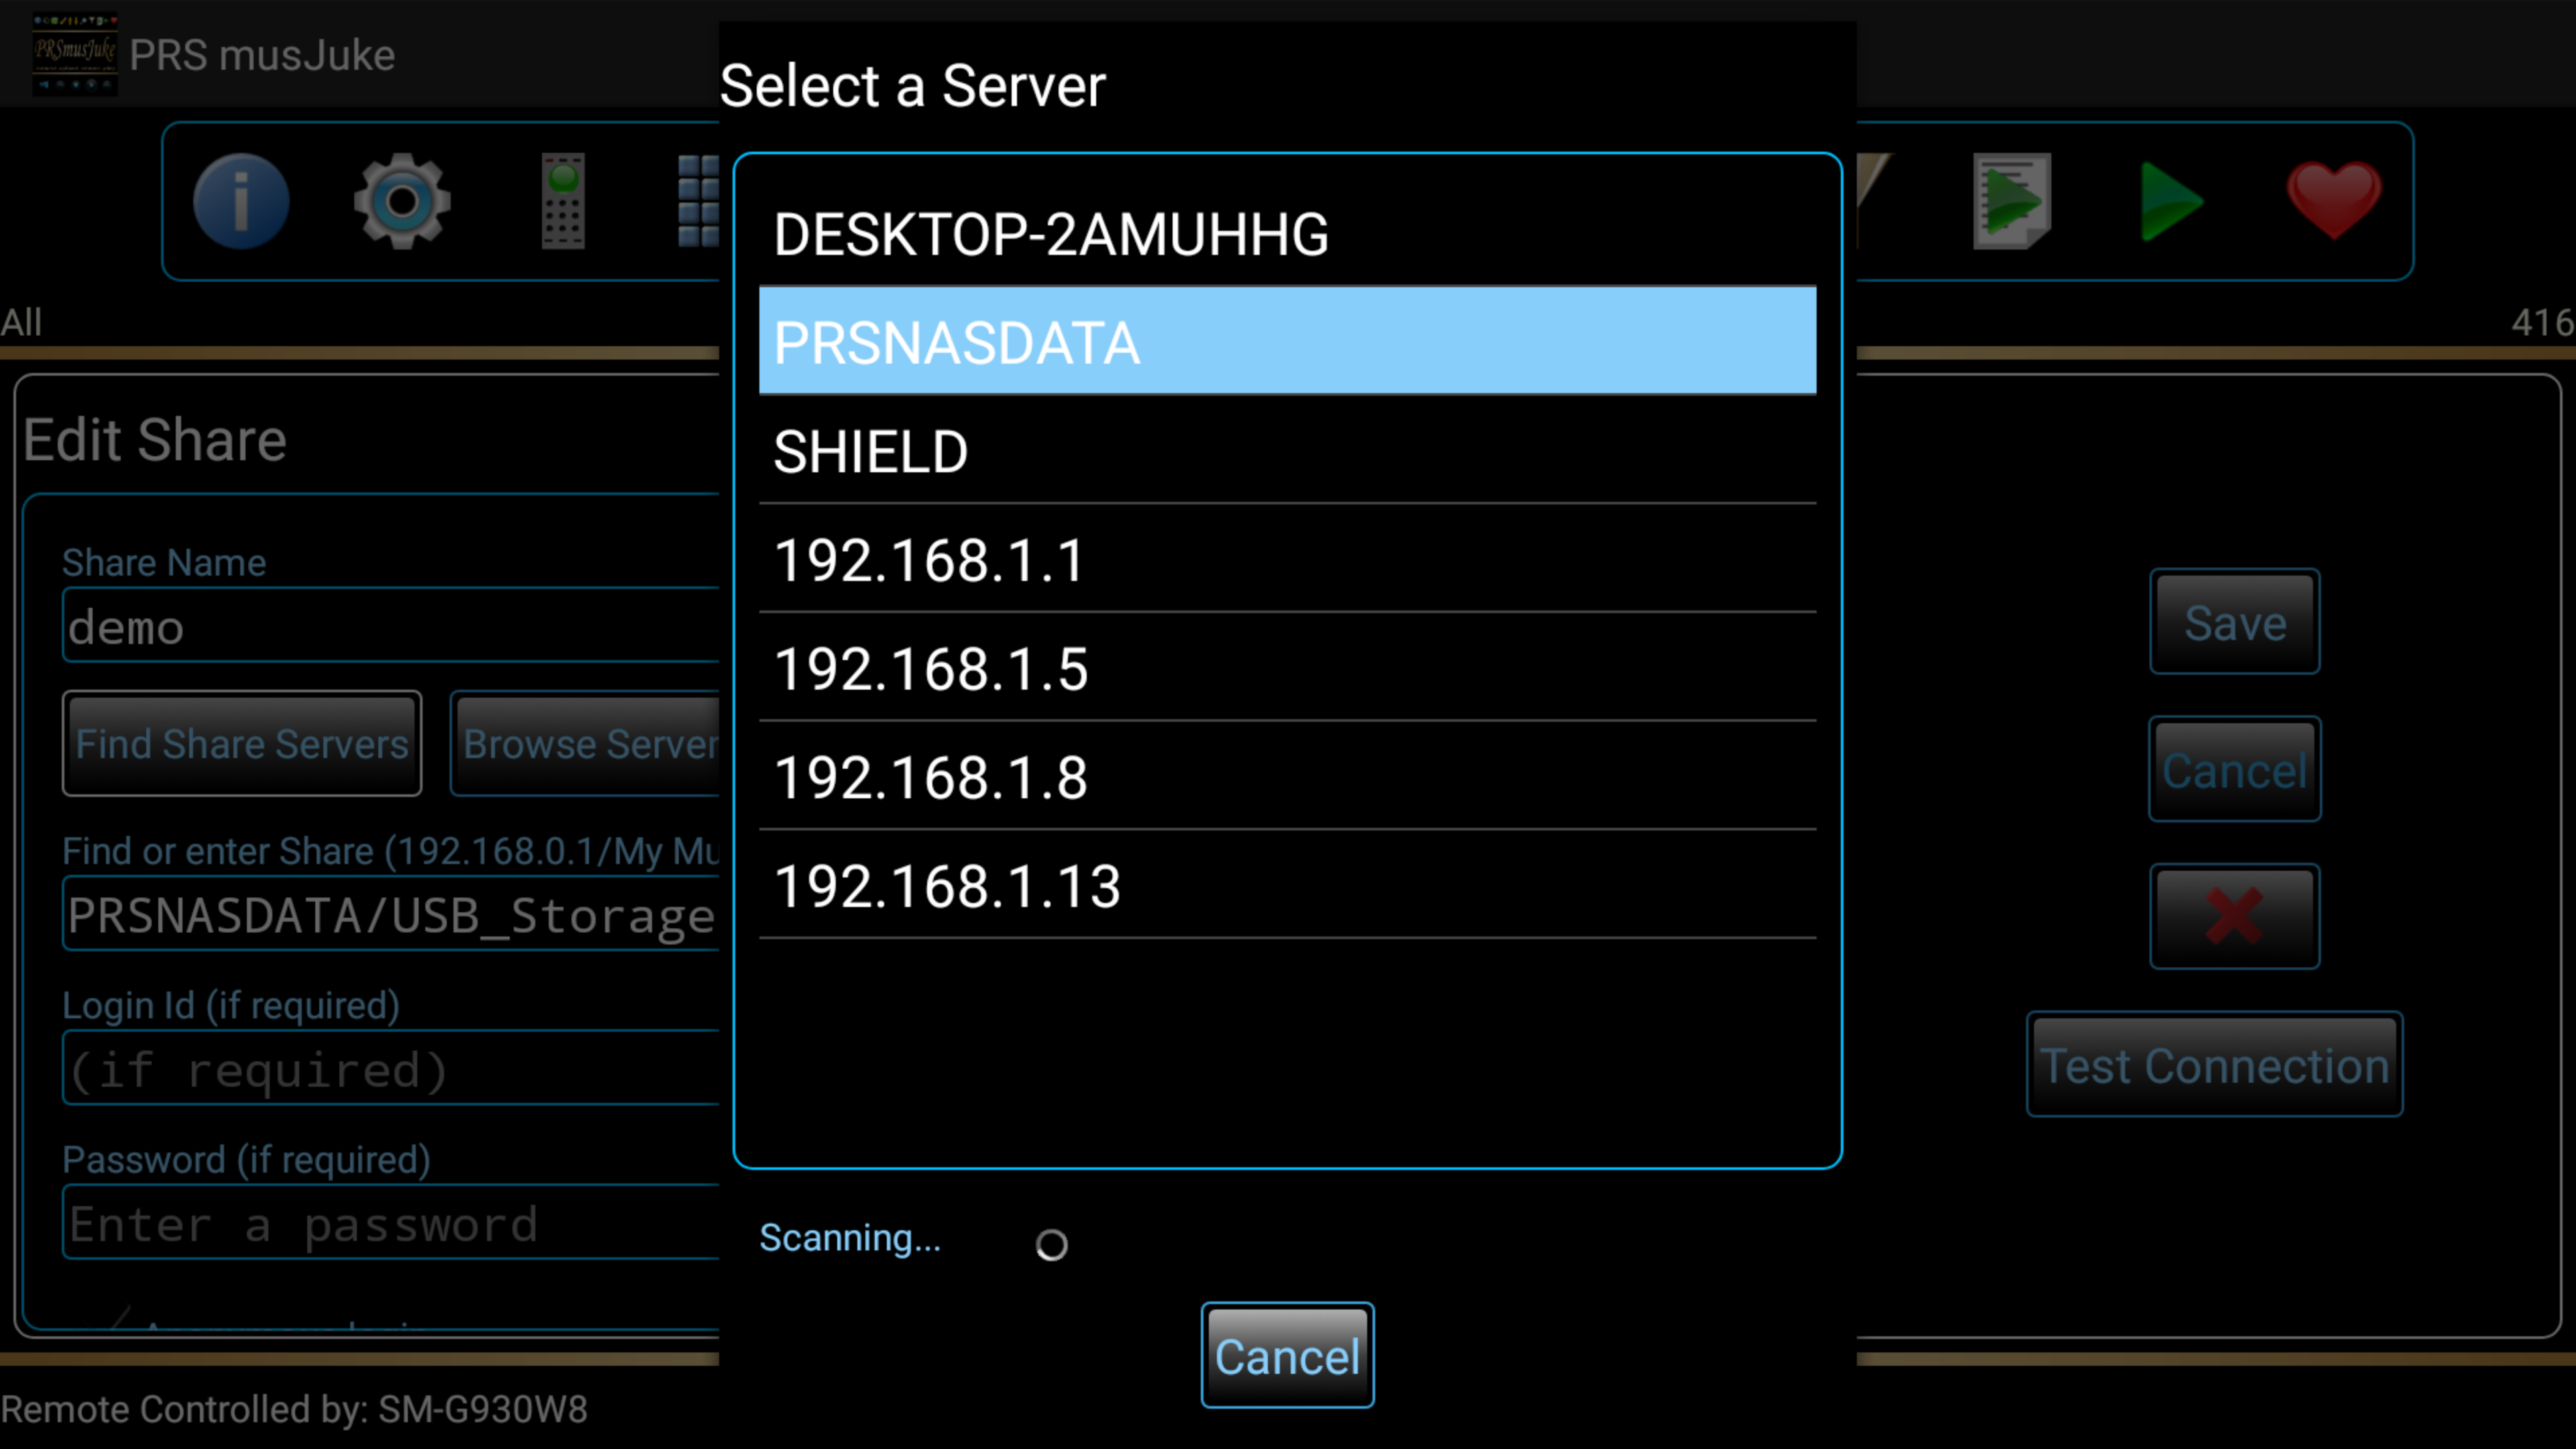 Select Servers or Devices on your network to scan